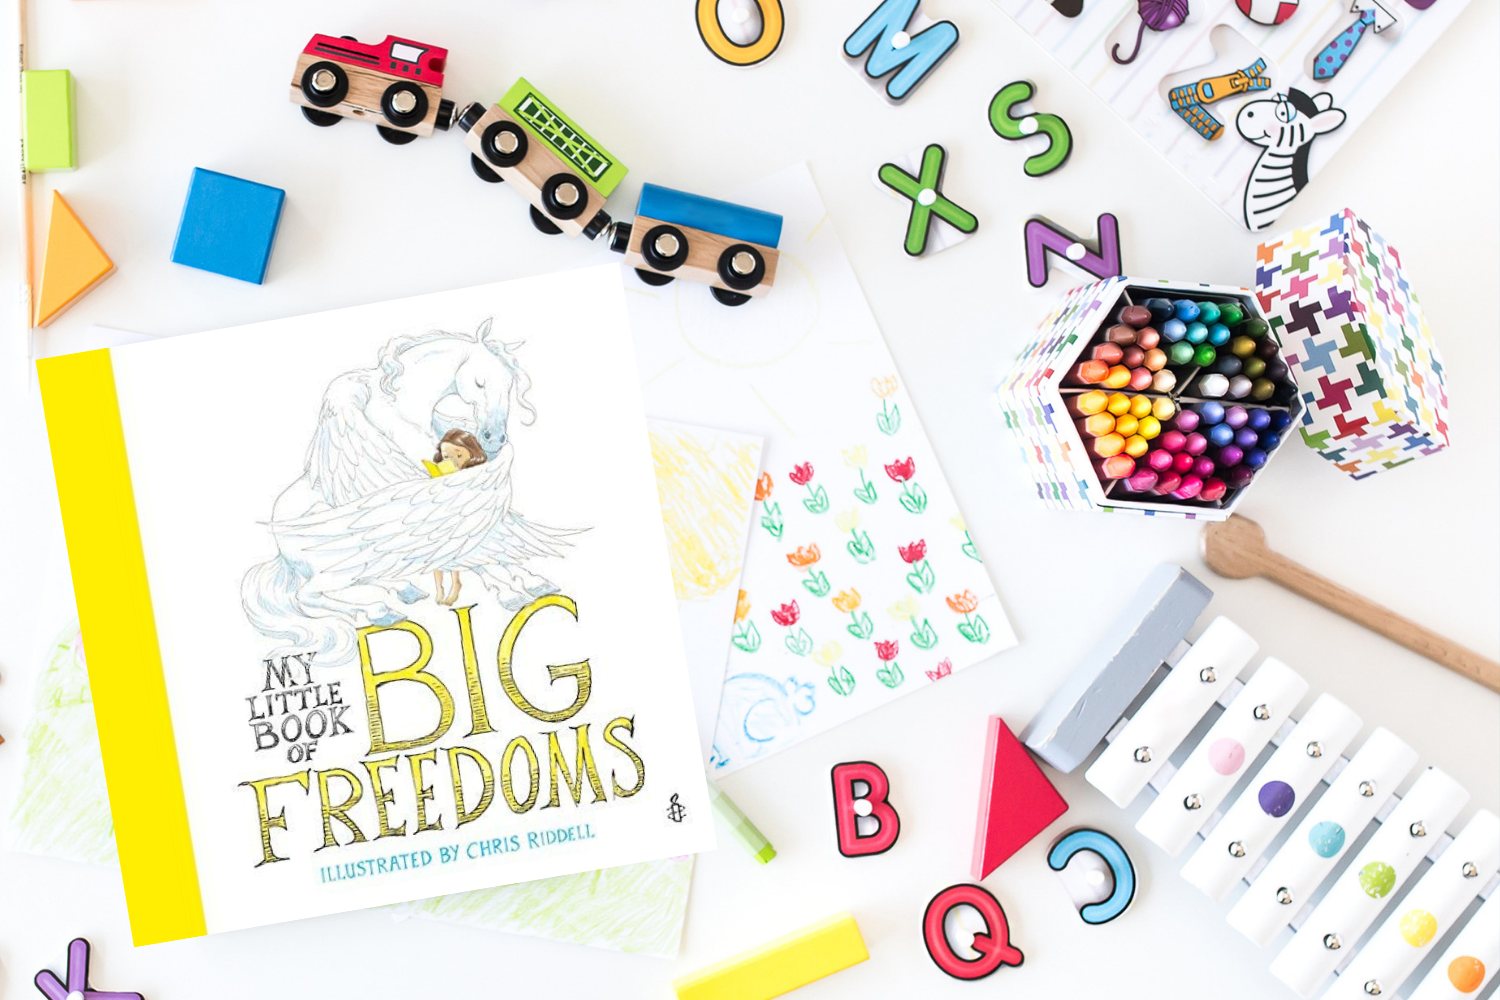 My Little Book of Big Freedoms - Books from Past Boxes of Tiny Humans Read Kids Book Subscription Box